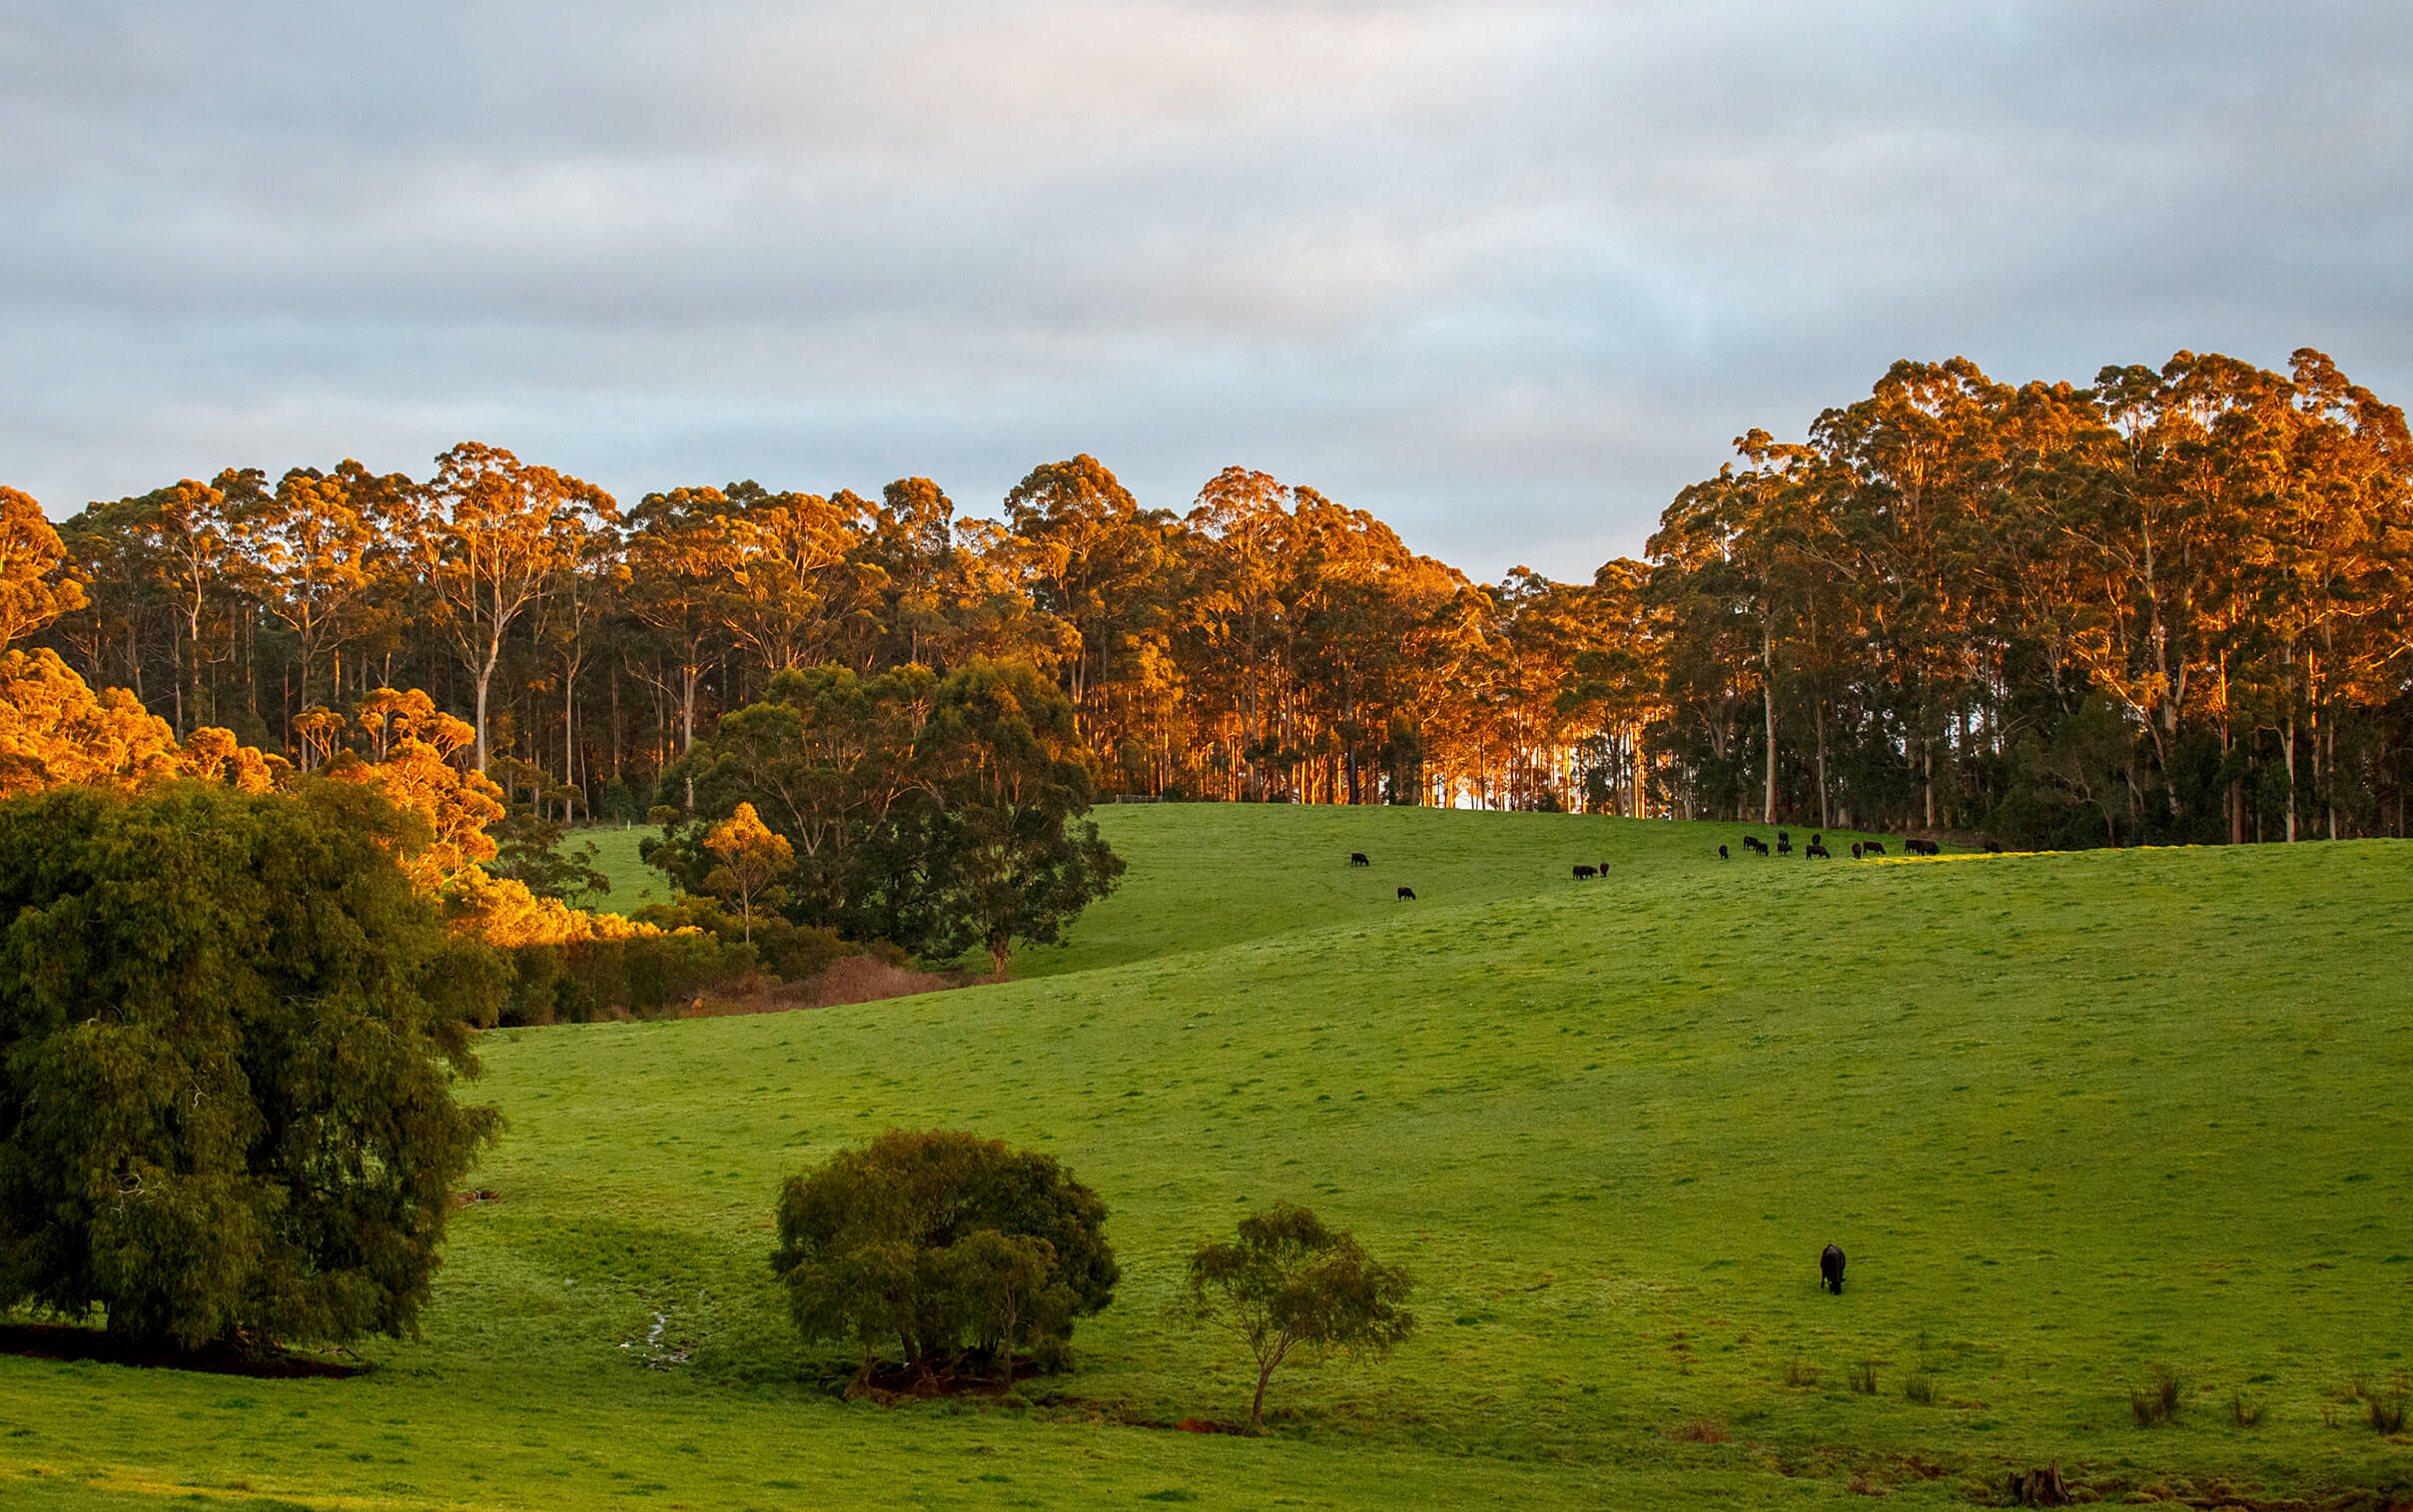 Sun rising over the Diamond Tree property while cattle graze on green grass lined with tall trees